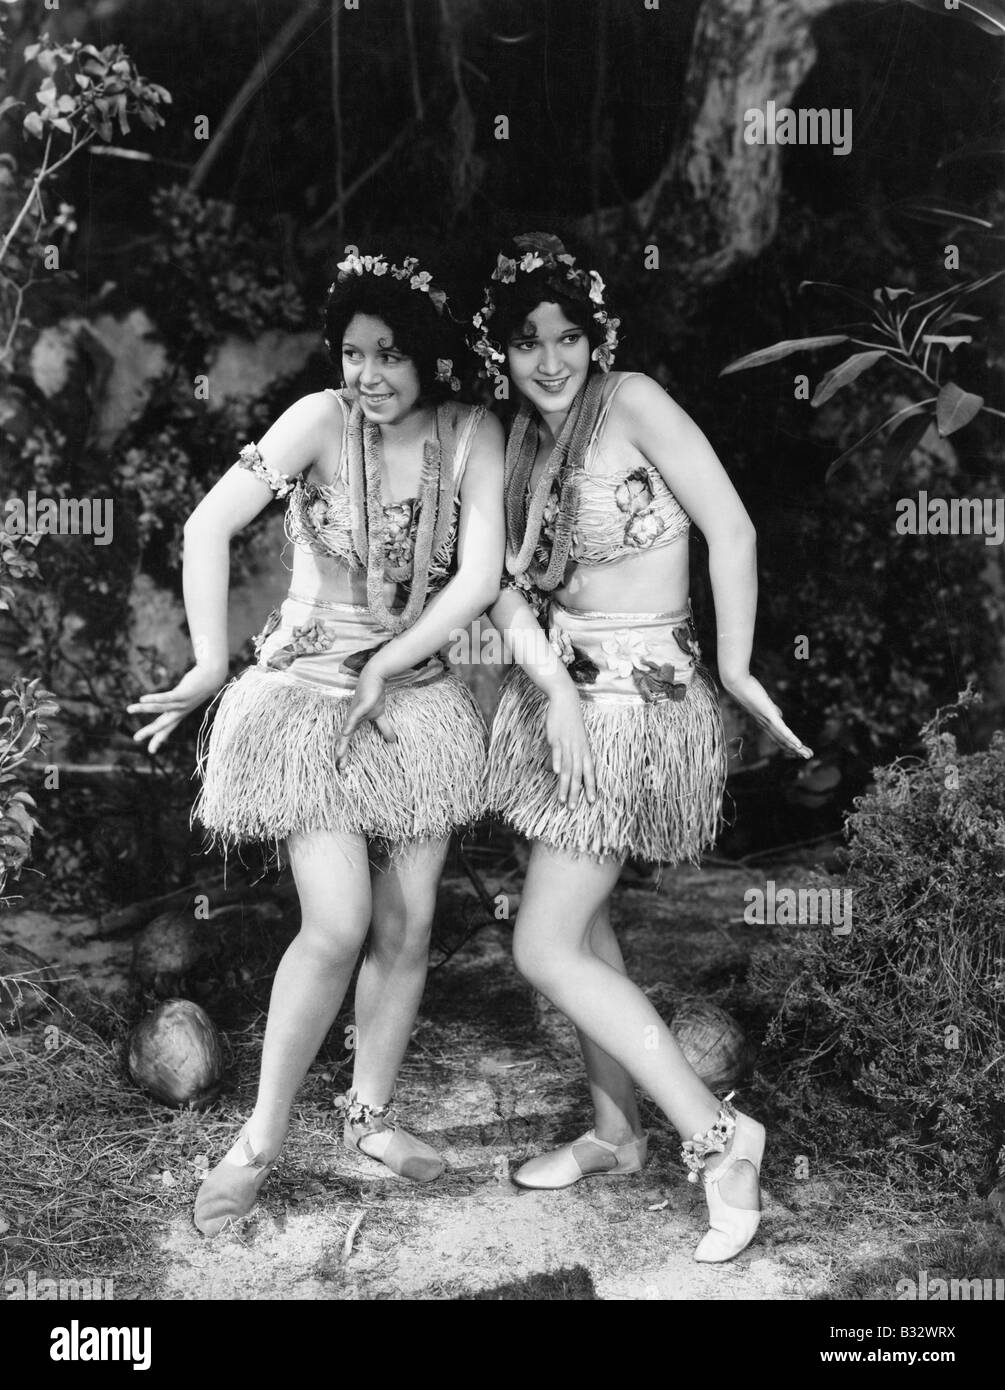 Two women dancing in grass skirts - Stock Image